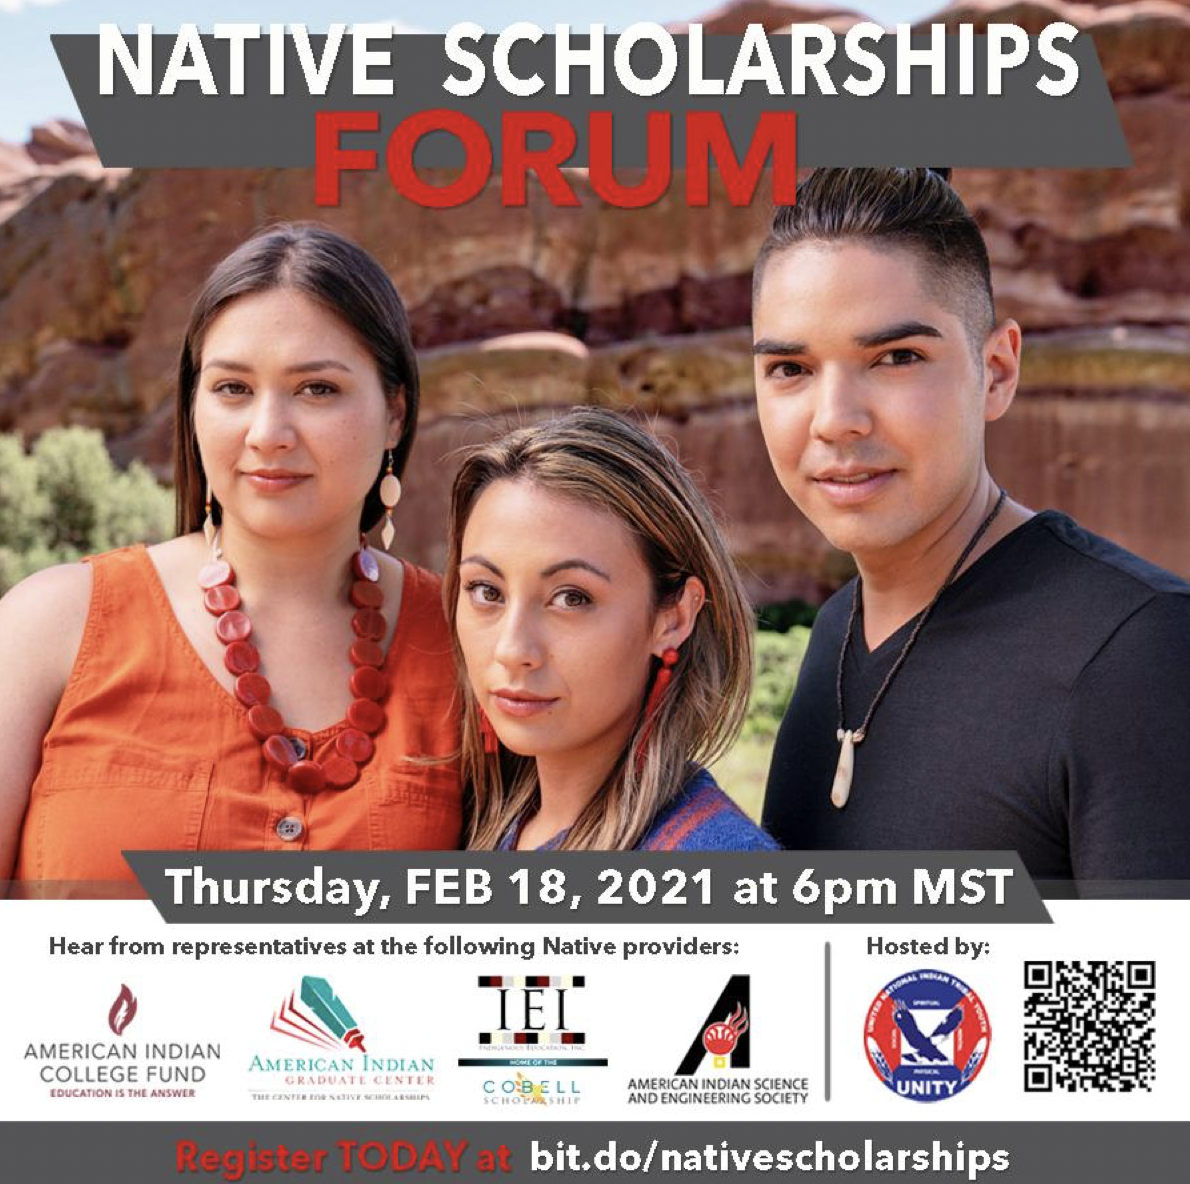 American Indian College Fund Flyer